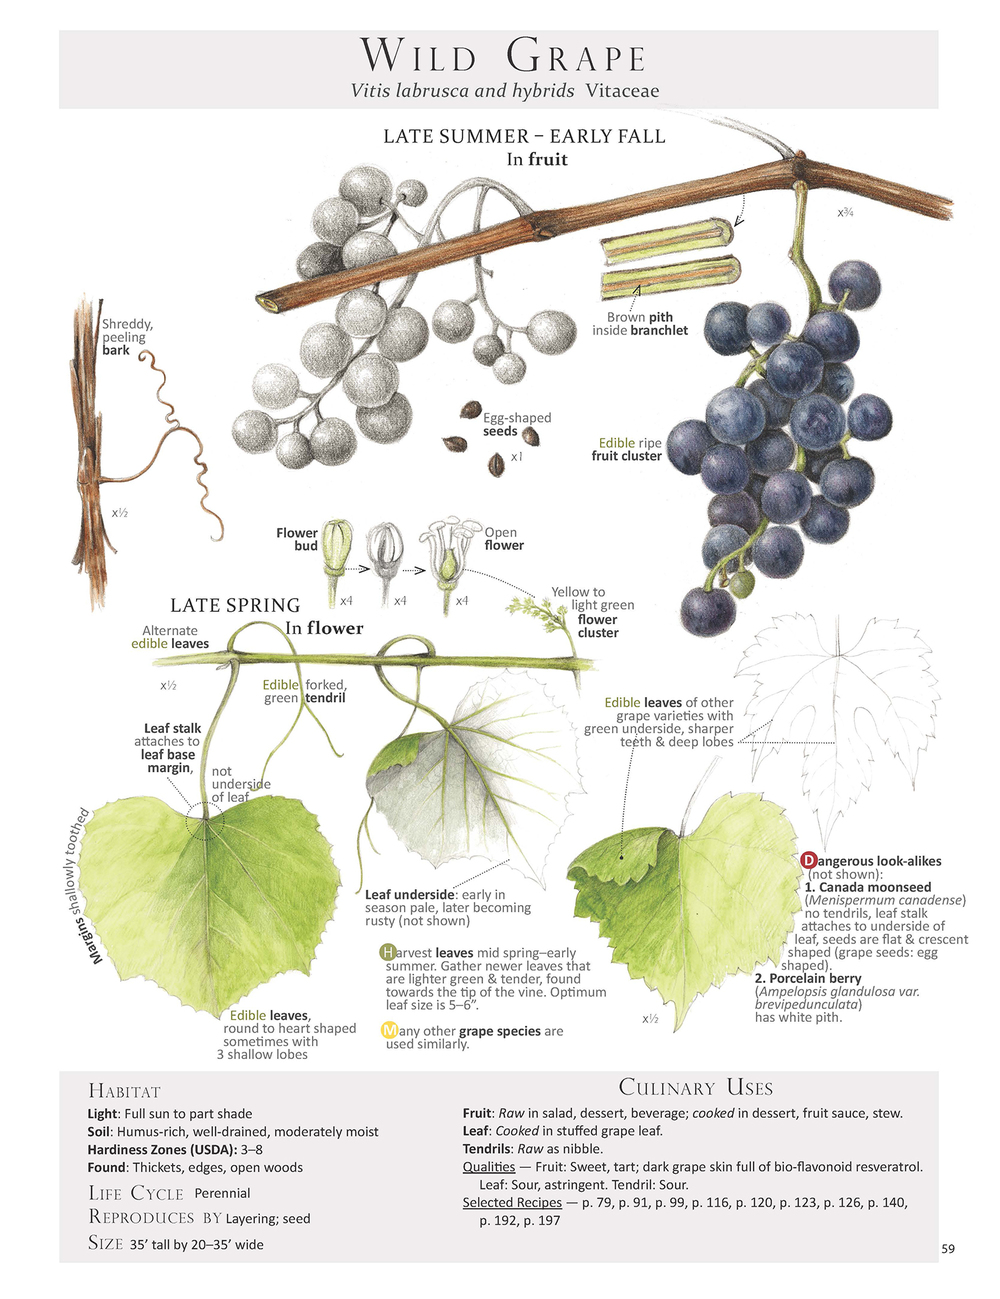 Wild Grape Leaf page from our book   Foraging & Feasting: A Field Guide and Wild Food Cookbook   by Dina Falconi; illustrated by Wendy Hollender